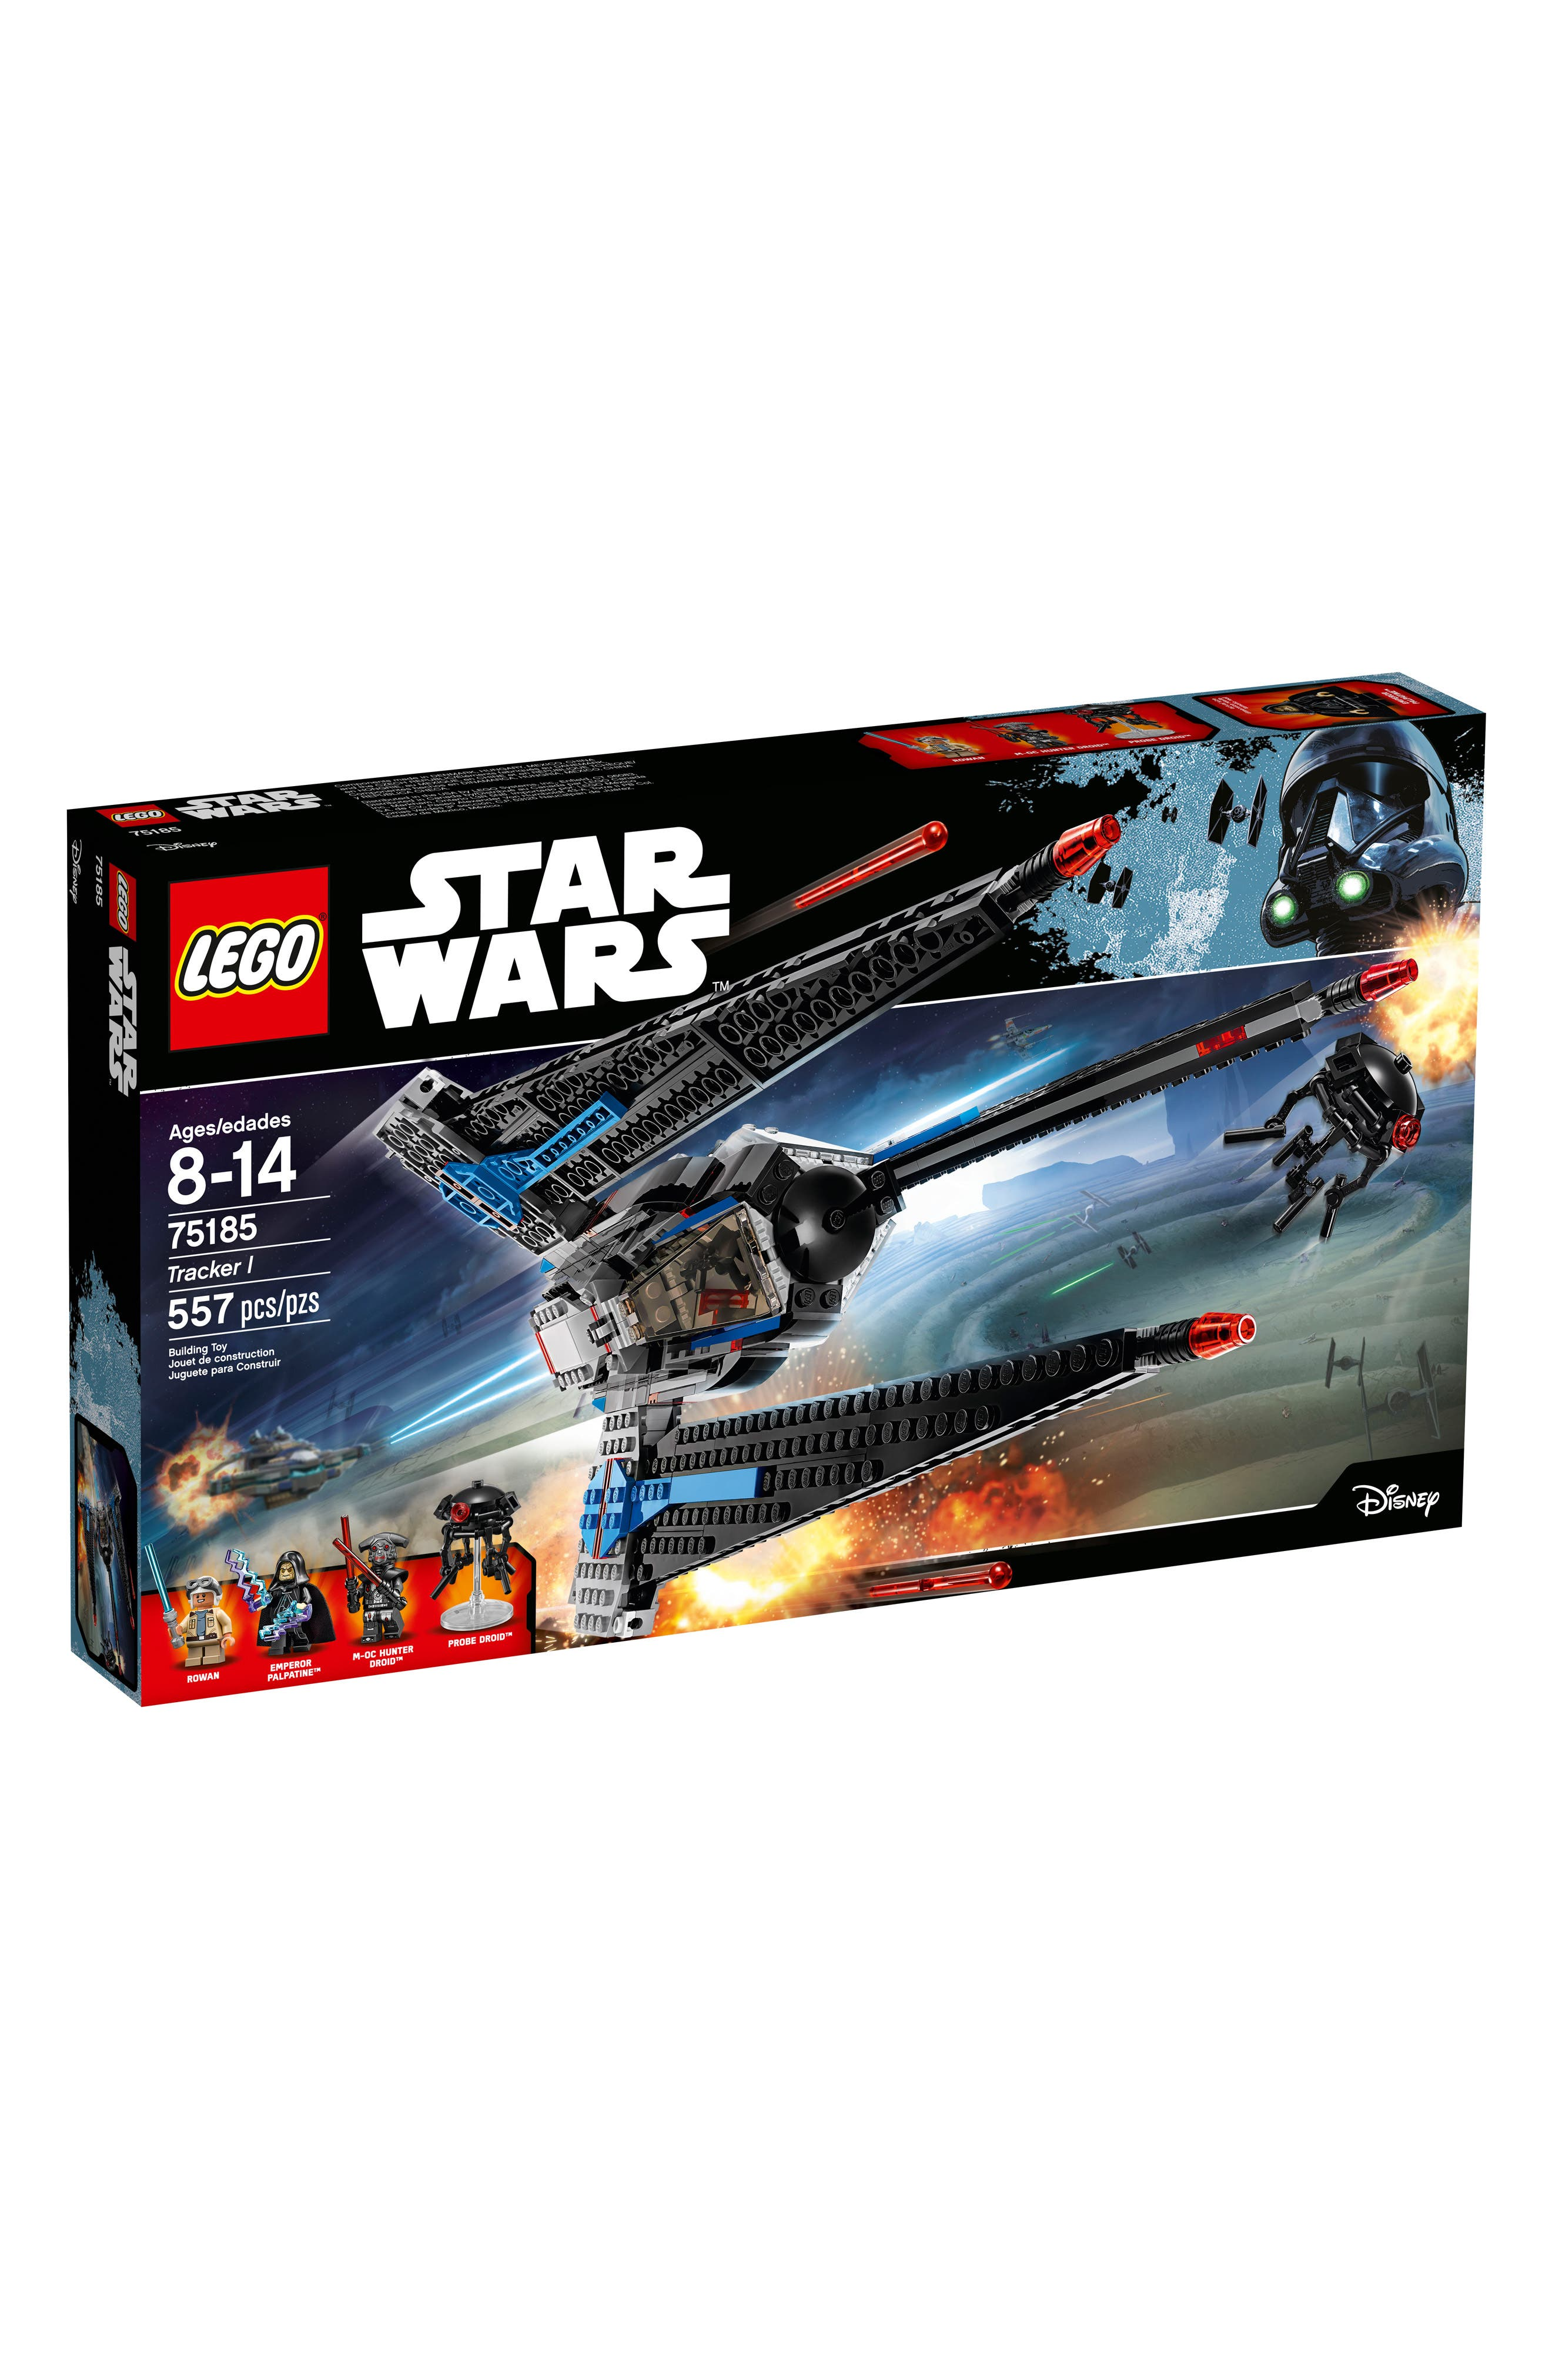 Alternate Image 1 Selected - LEGO® Star Wars™: The Freemaker Adventures Tracker I Play Set - 75185